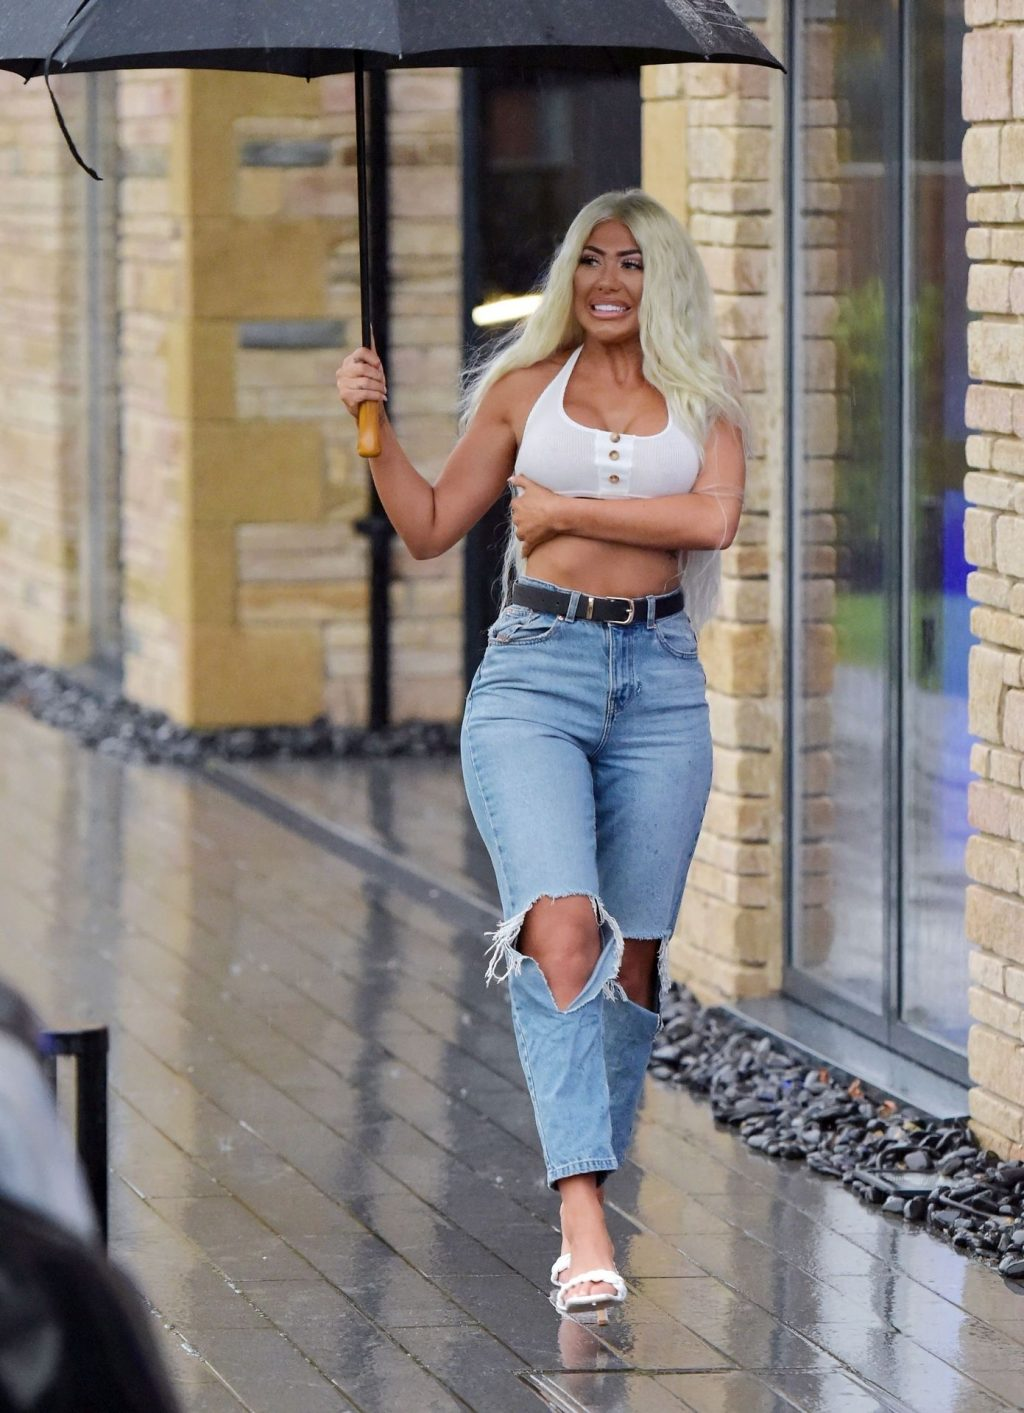 Braless Chloe Ferry Steps Out Showing Off Her Assets (23 Photos)